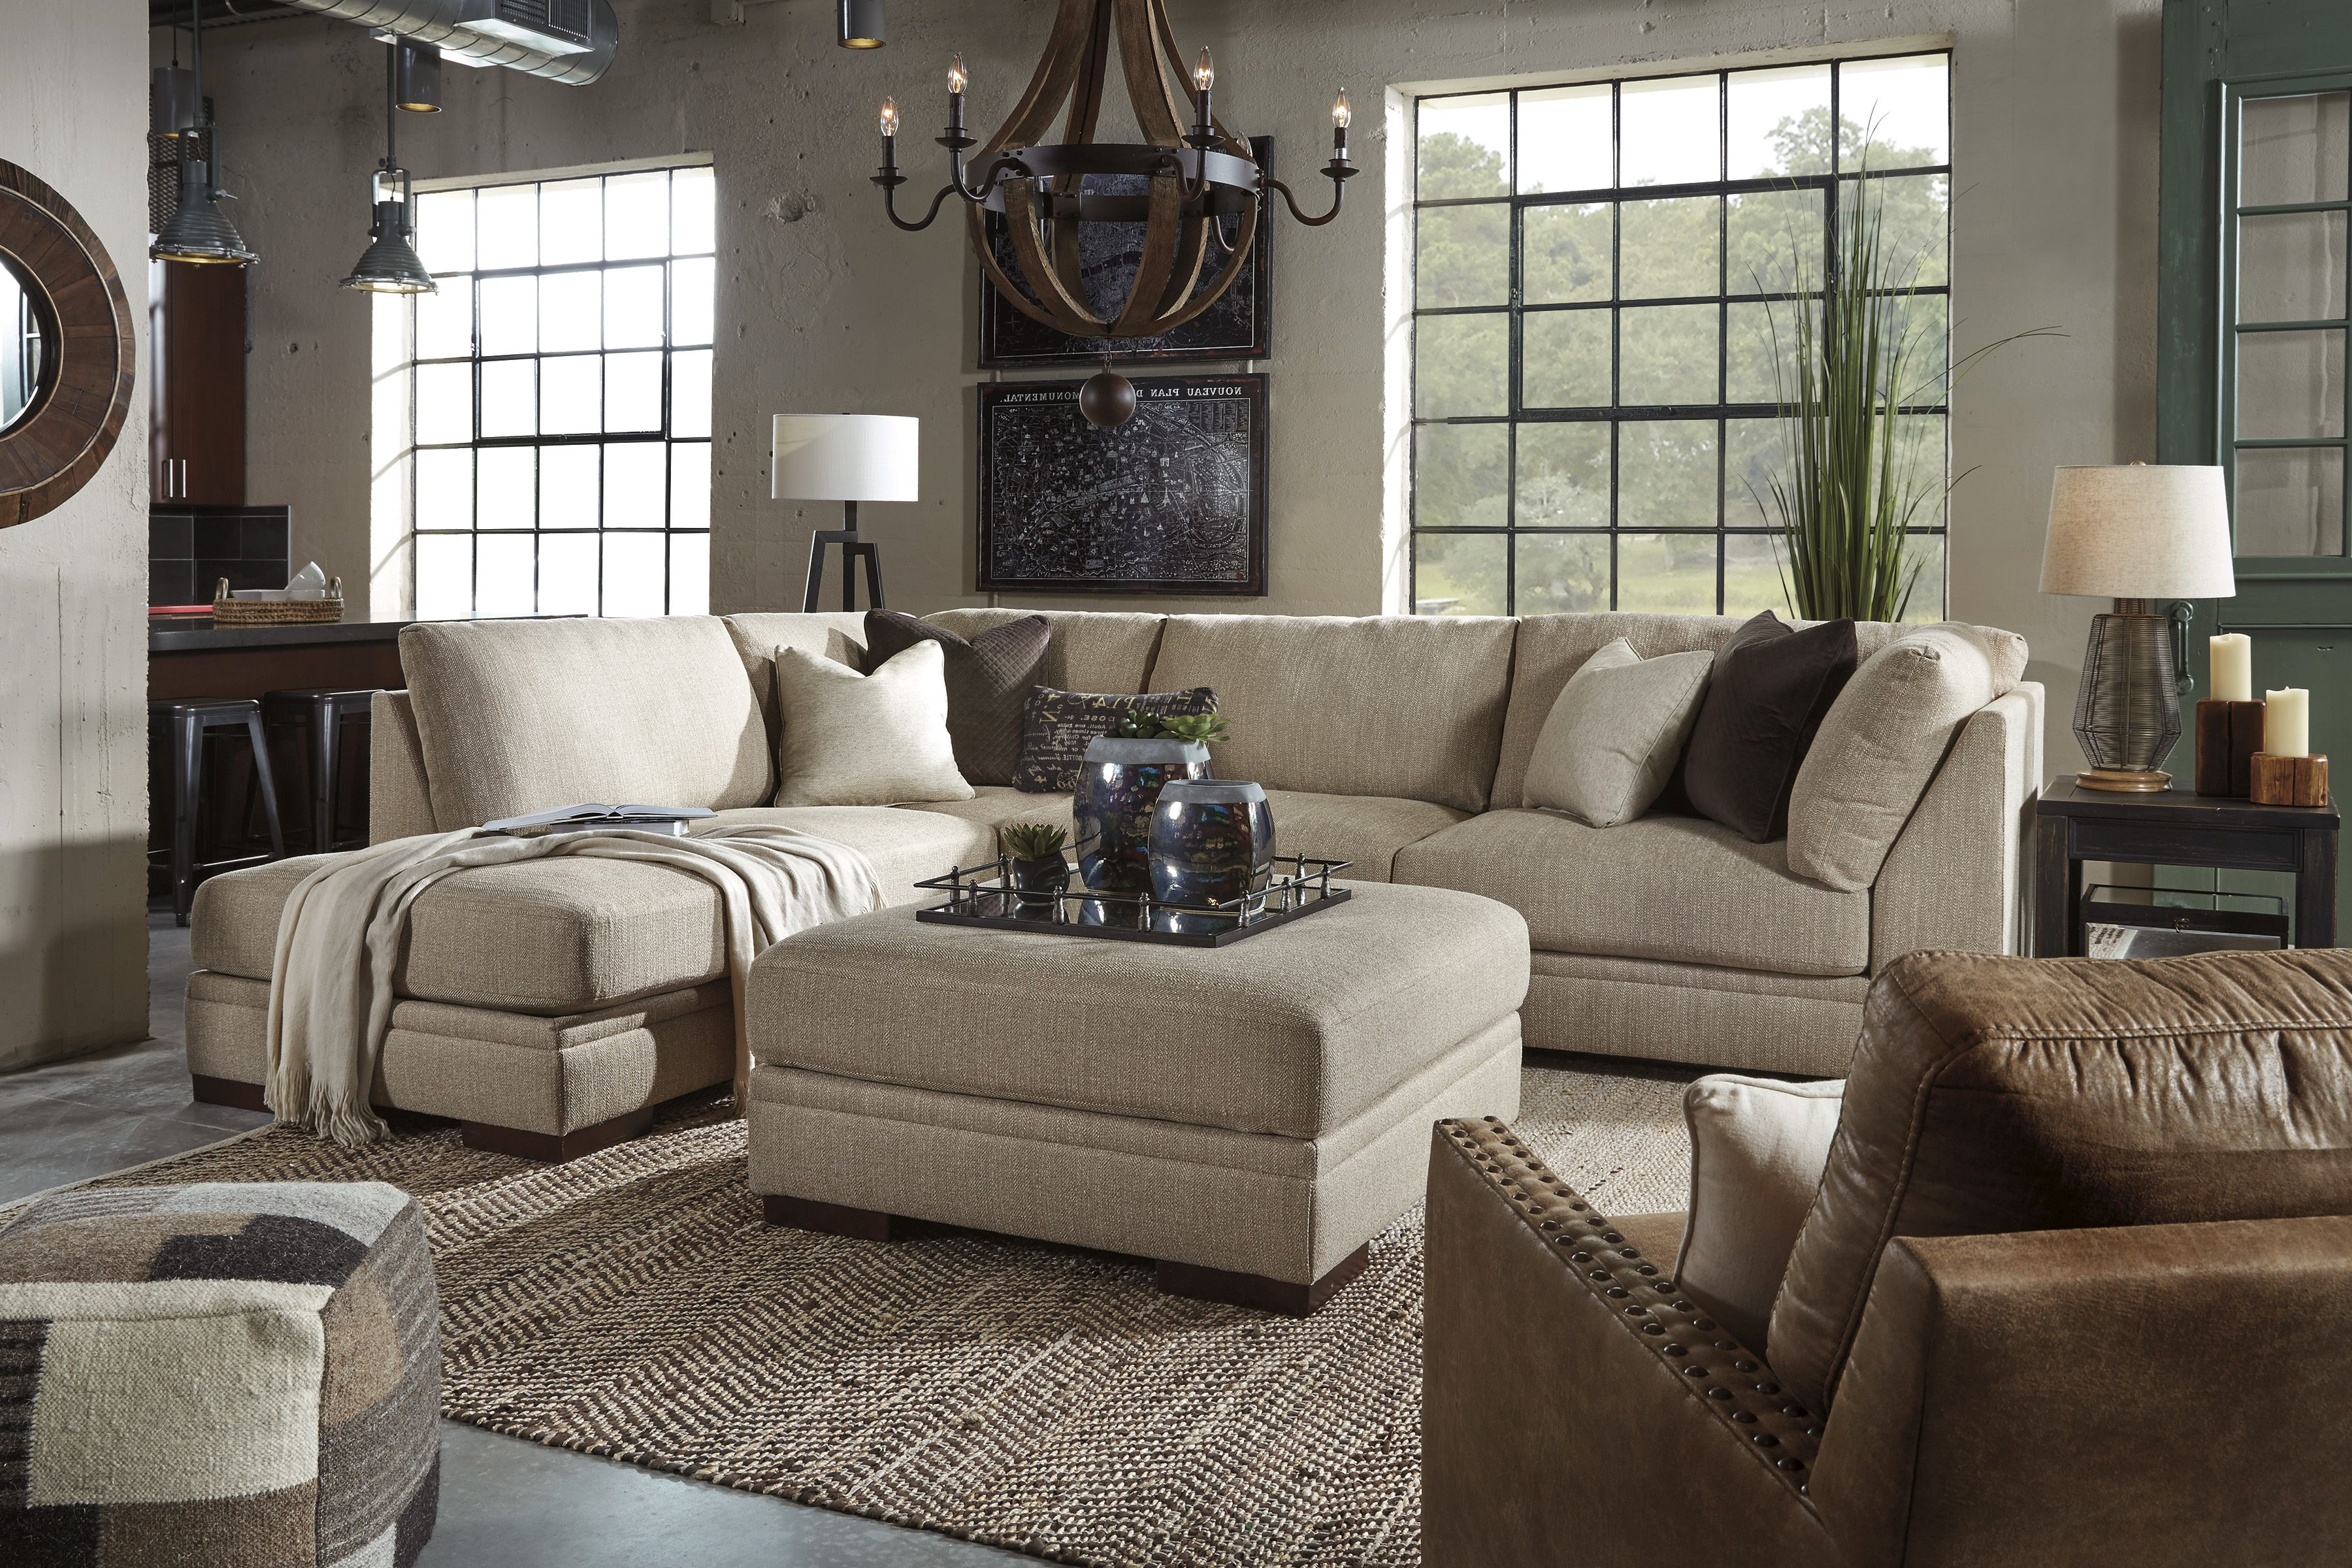 Malakoff Sectional Ashley Home Store Hausmobel Haus Deko Ashley Mobel